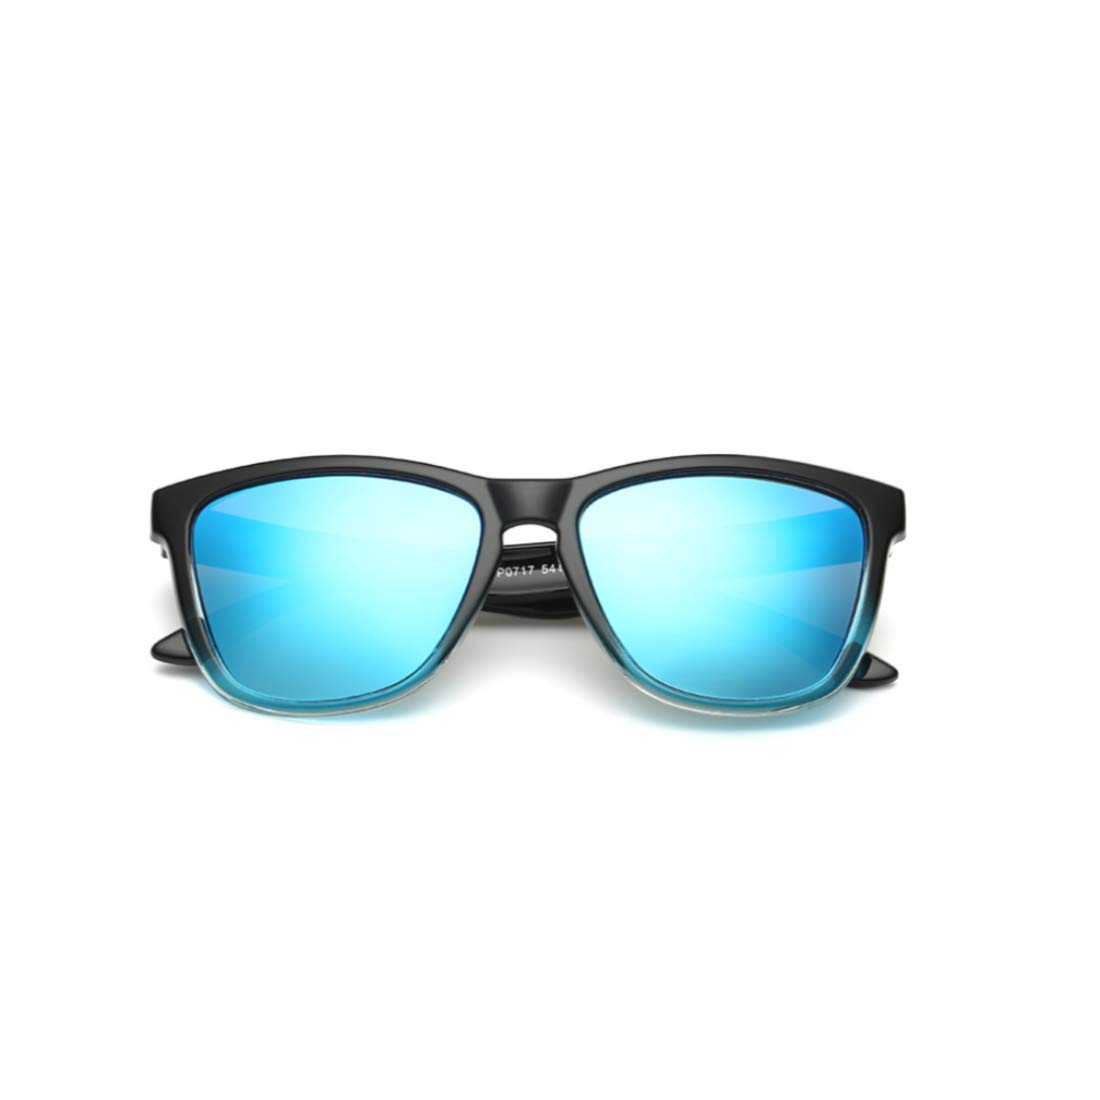 U.S Unisex Sunglasses For Men & Women